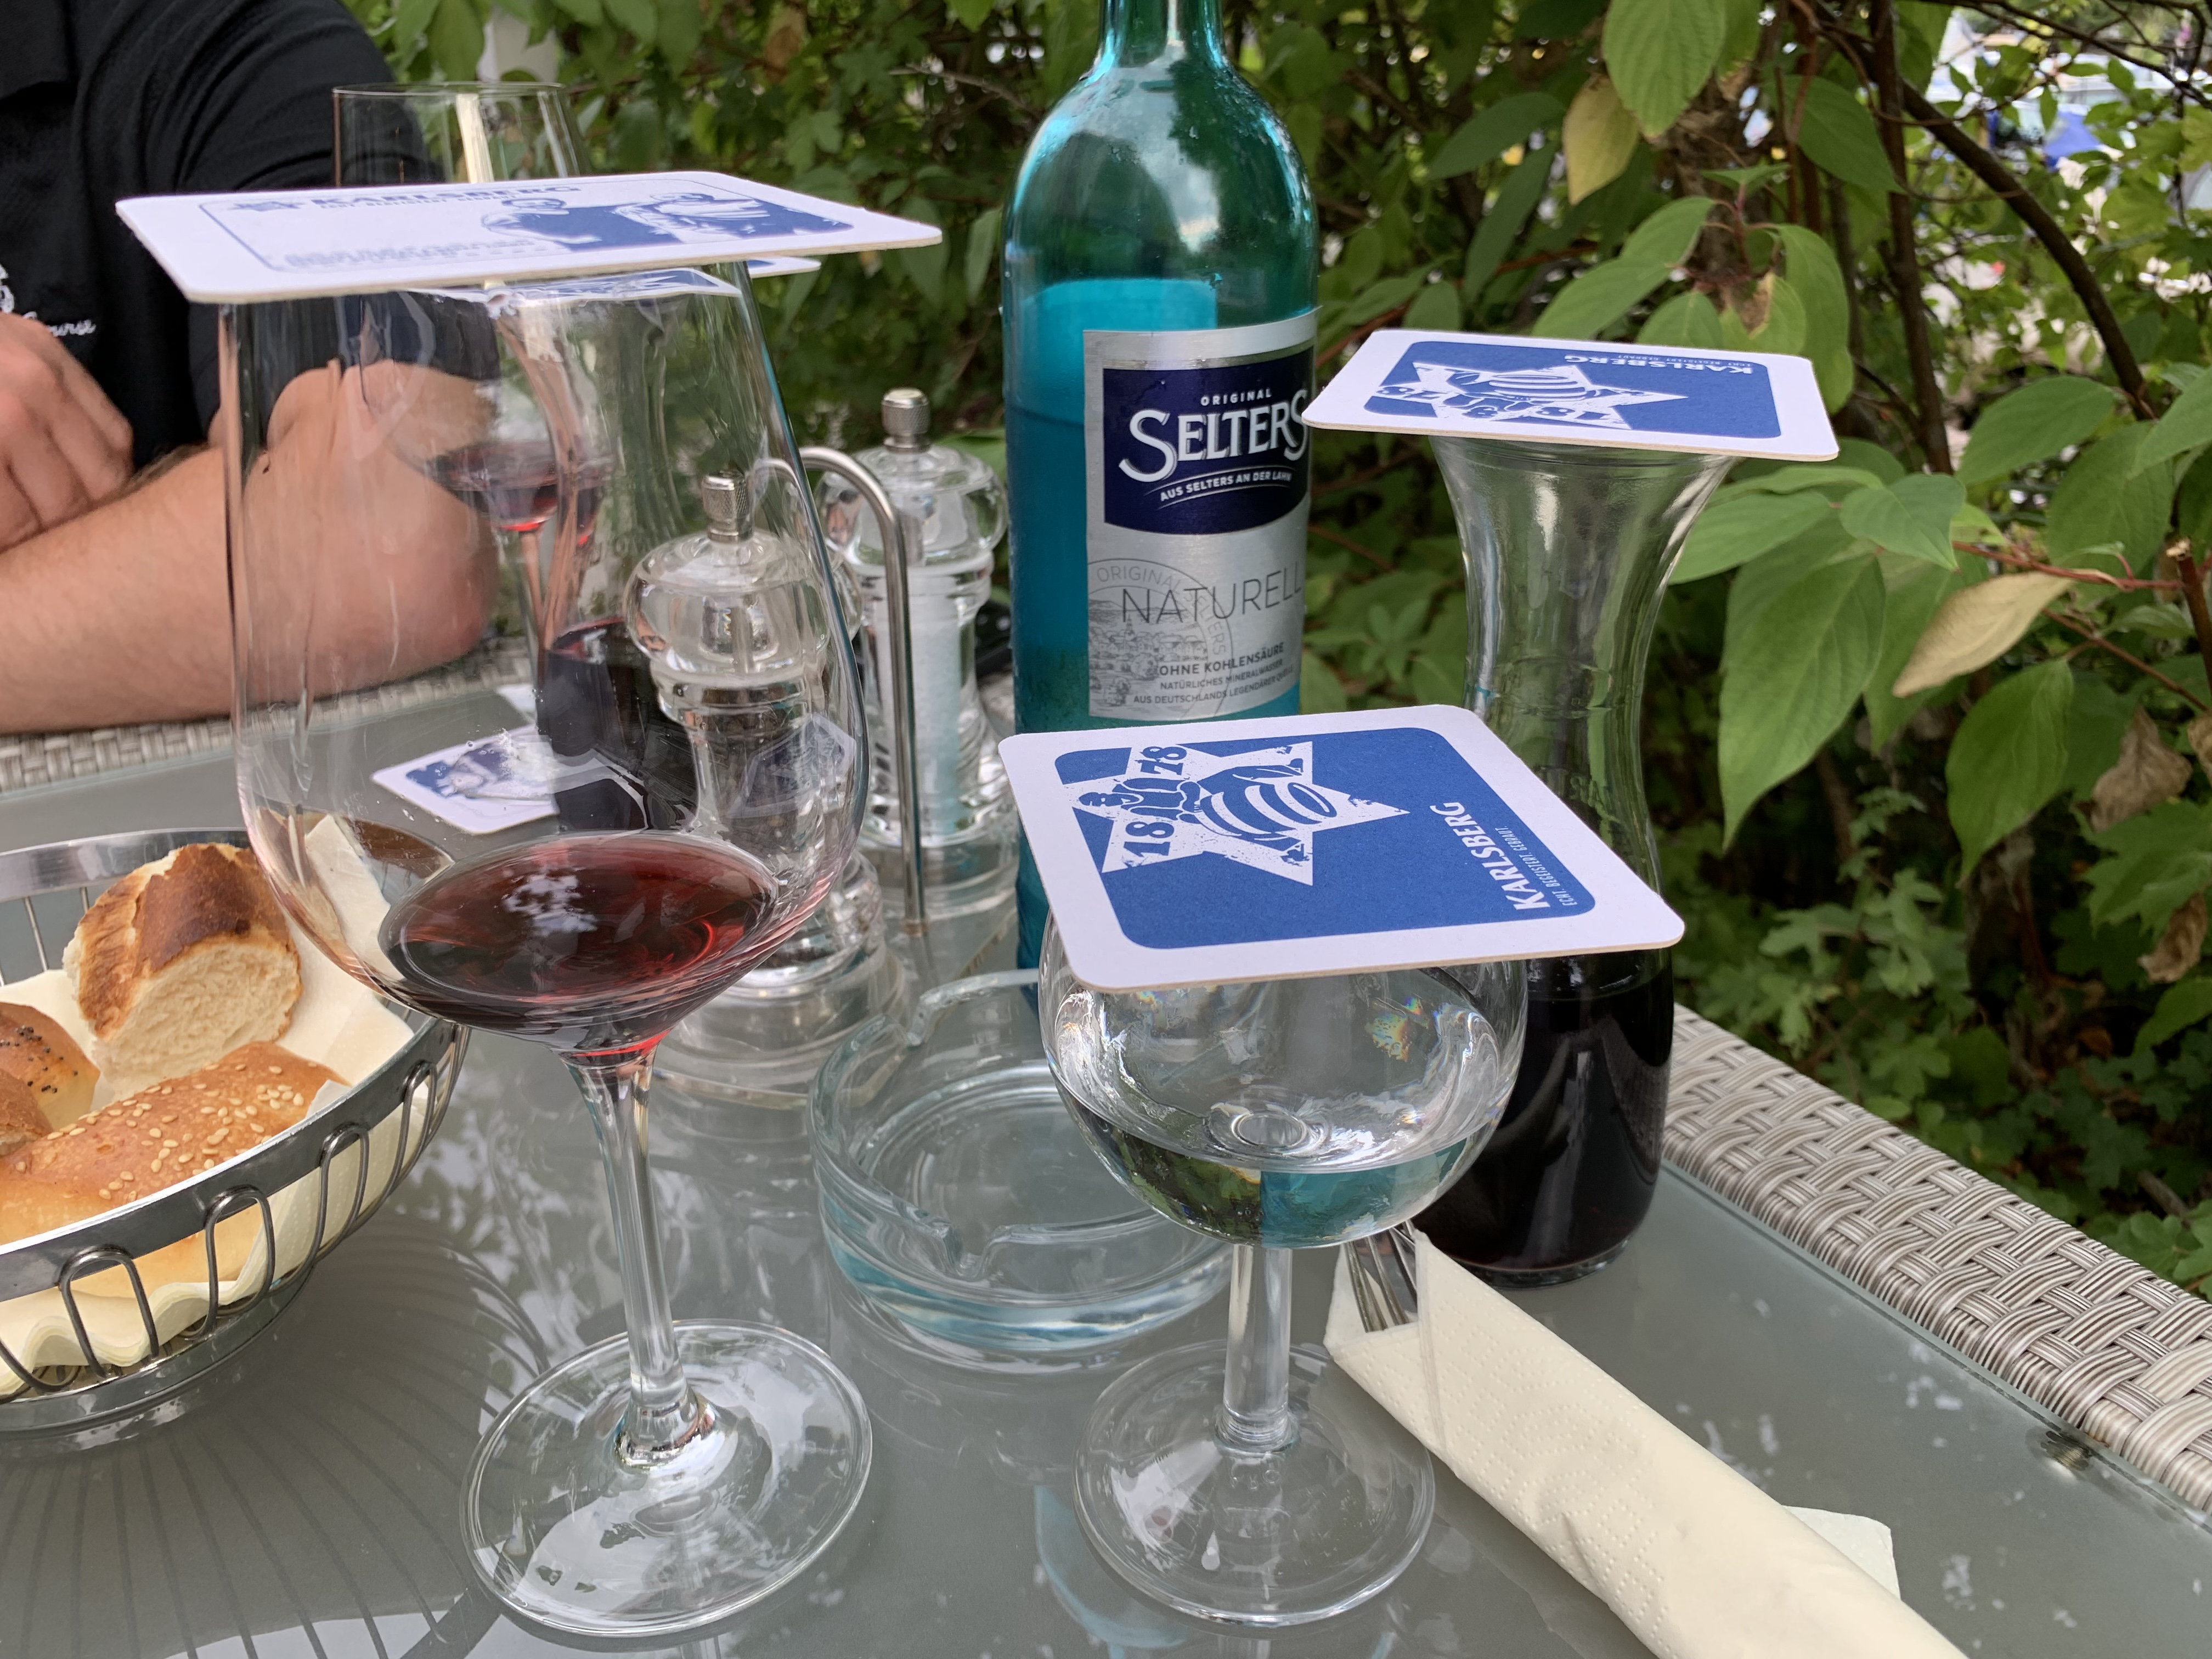 Coasters are used for the top of your glass to keep out bees and bugs